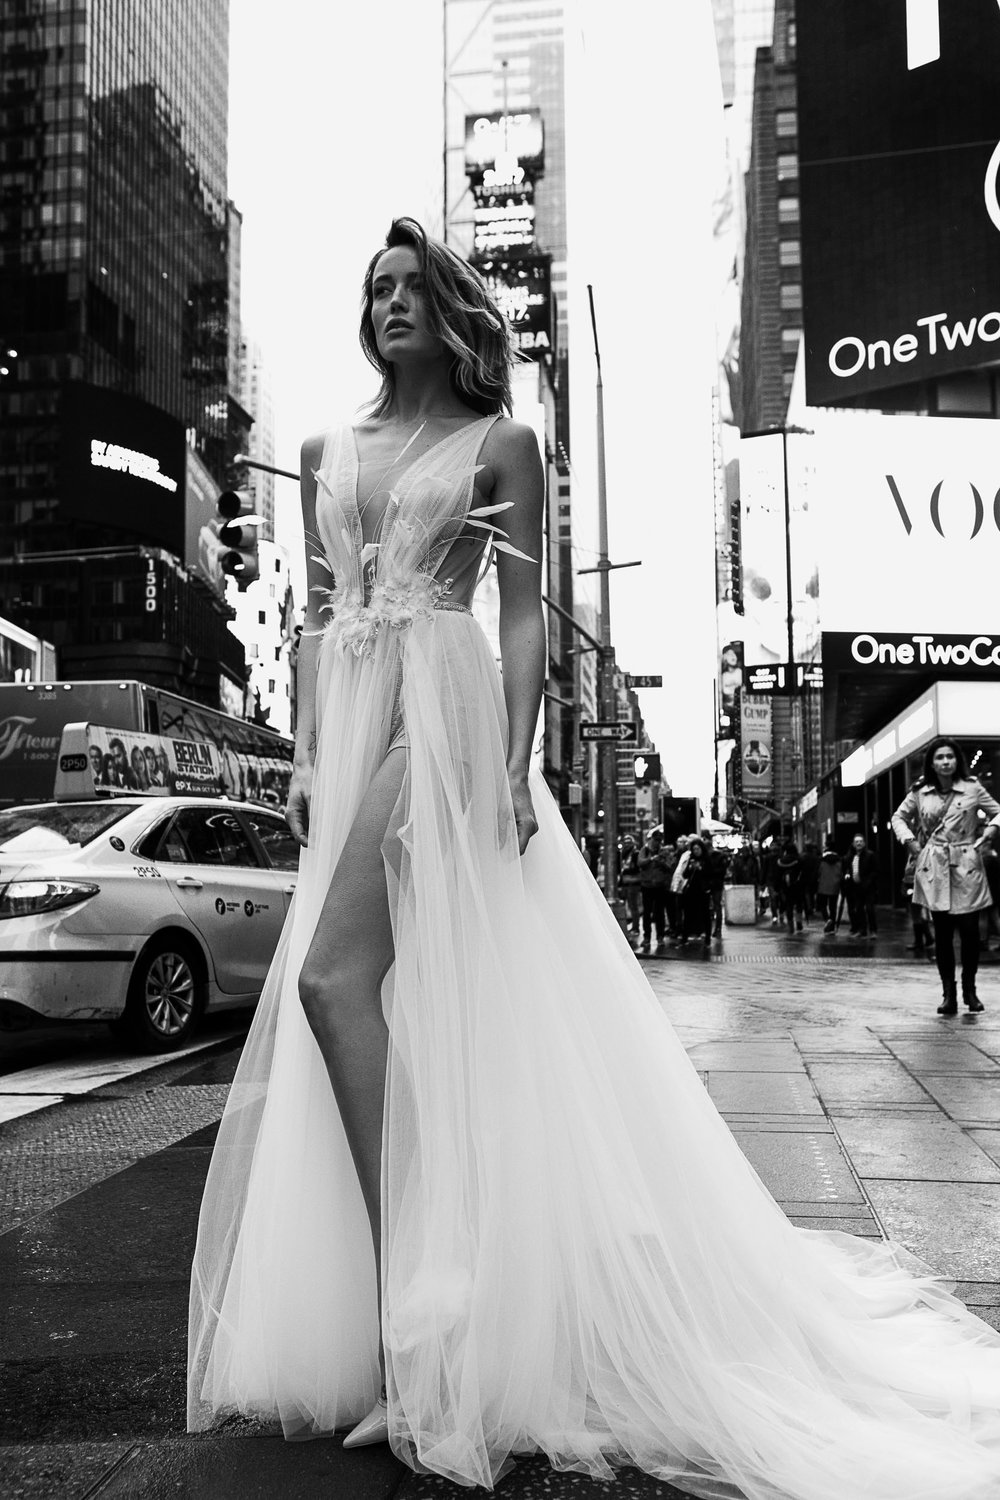 Campaign for Tal Kedem in New York